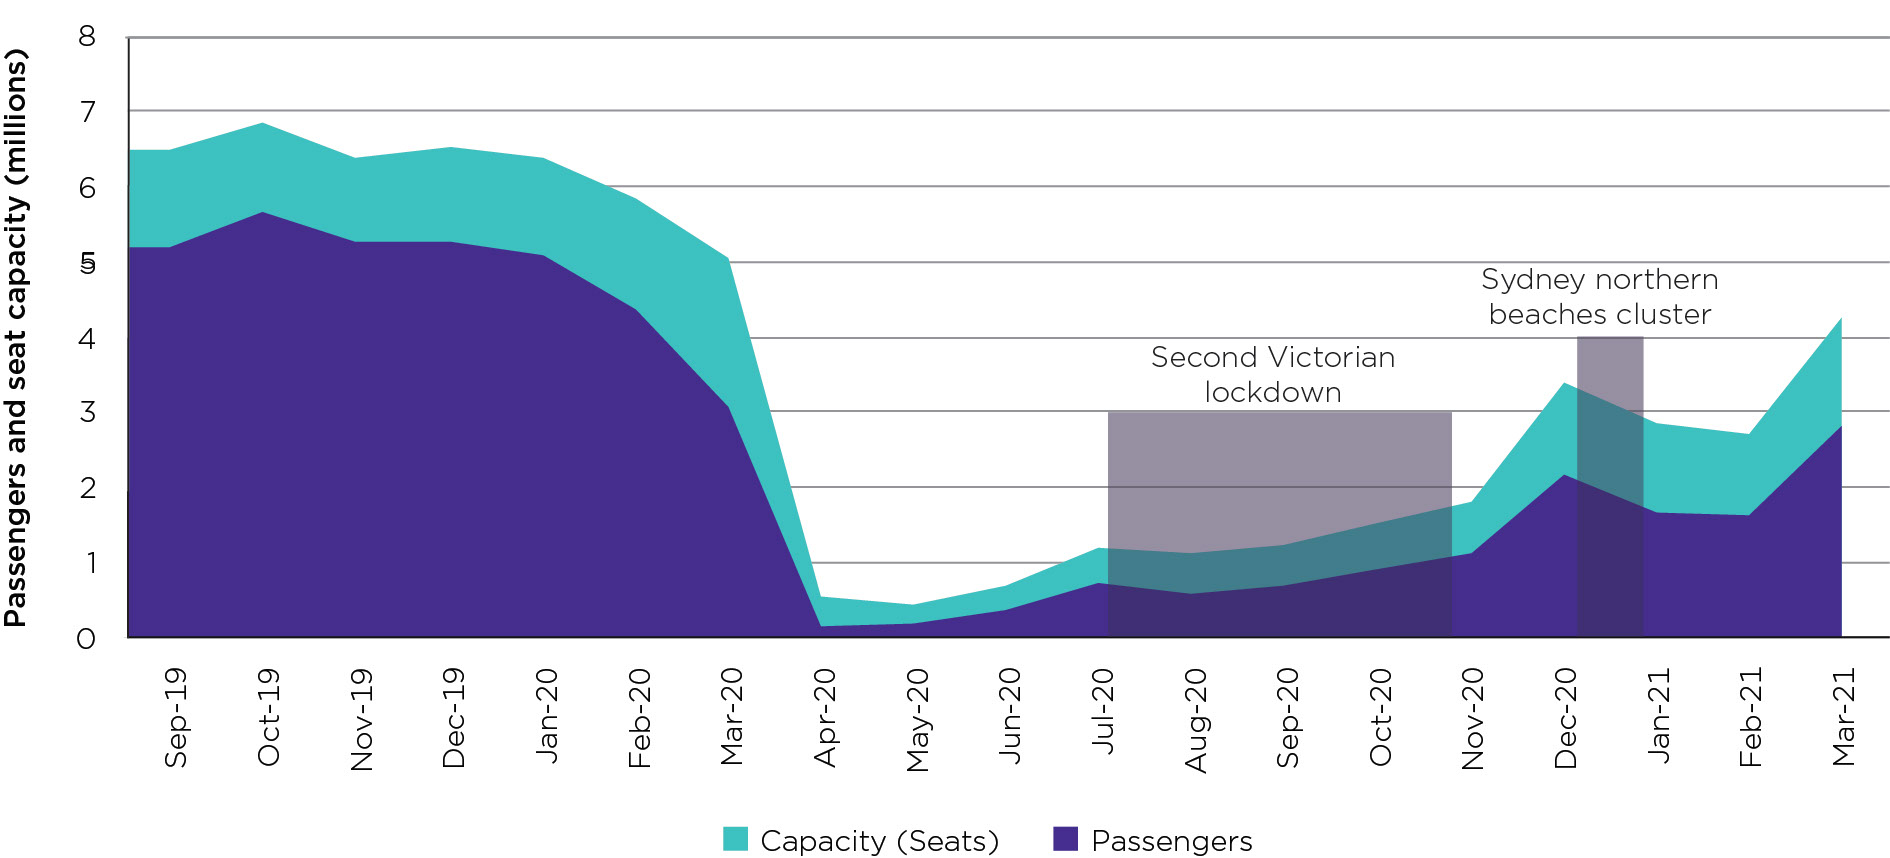 The number of passengers travelling on Australia's domestic airlines has been increasing since May 2020 but lockdowns as a result of COVID-19 outbreaks have halted the recovery